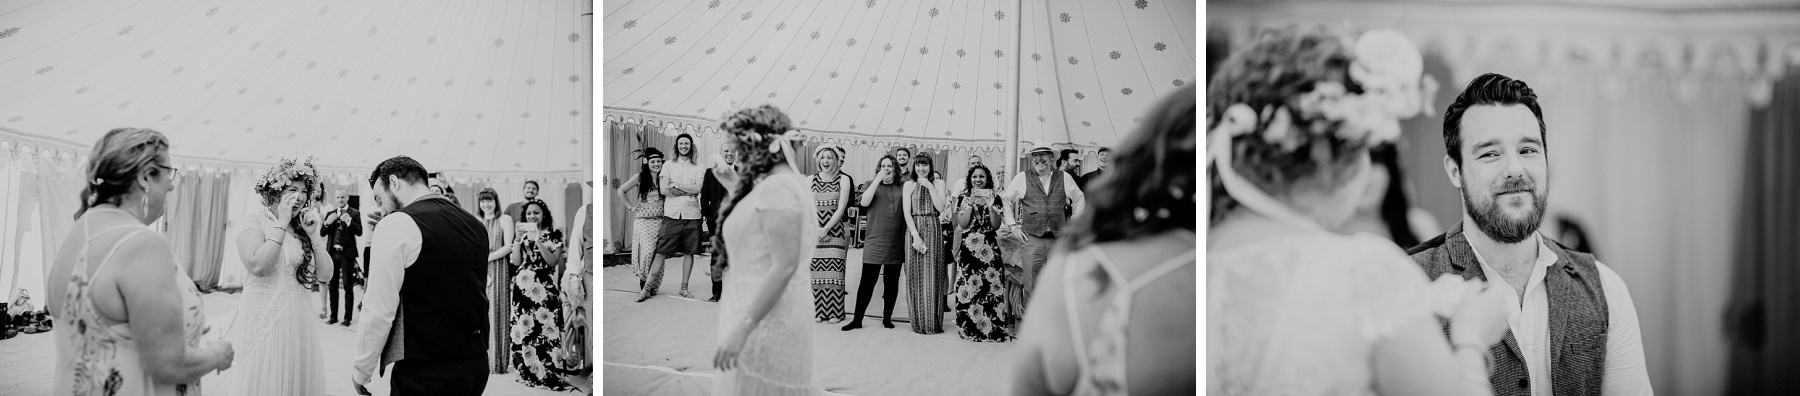 humanist festival wedding